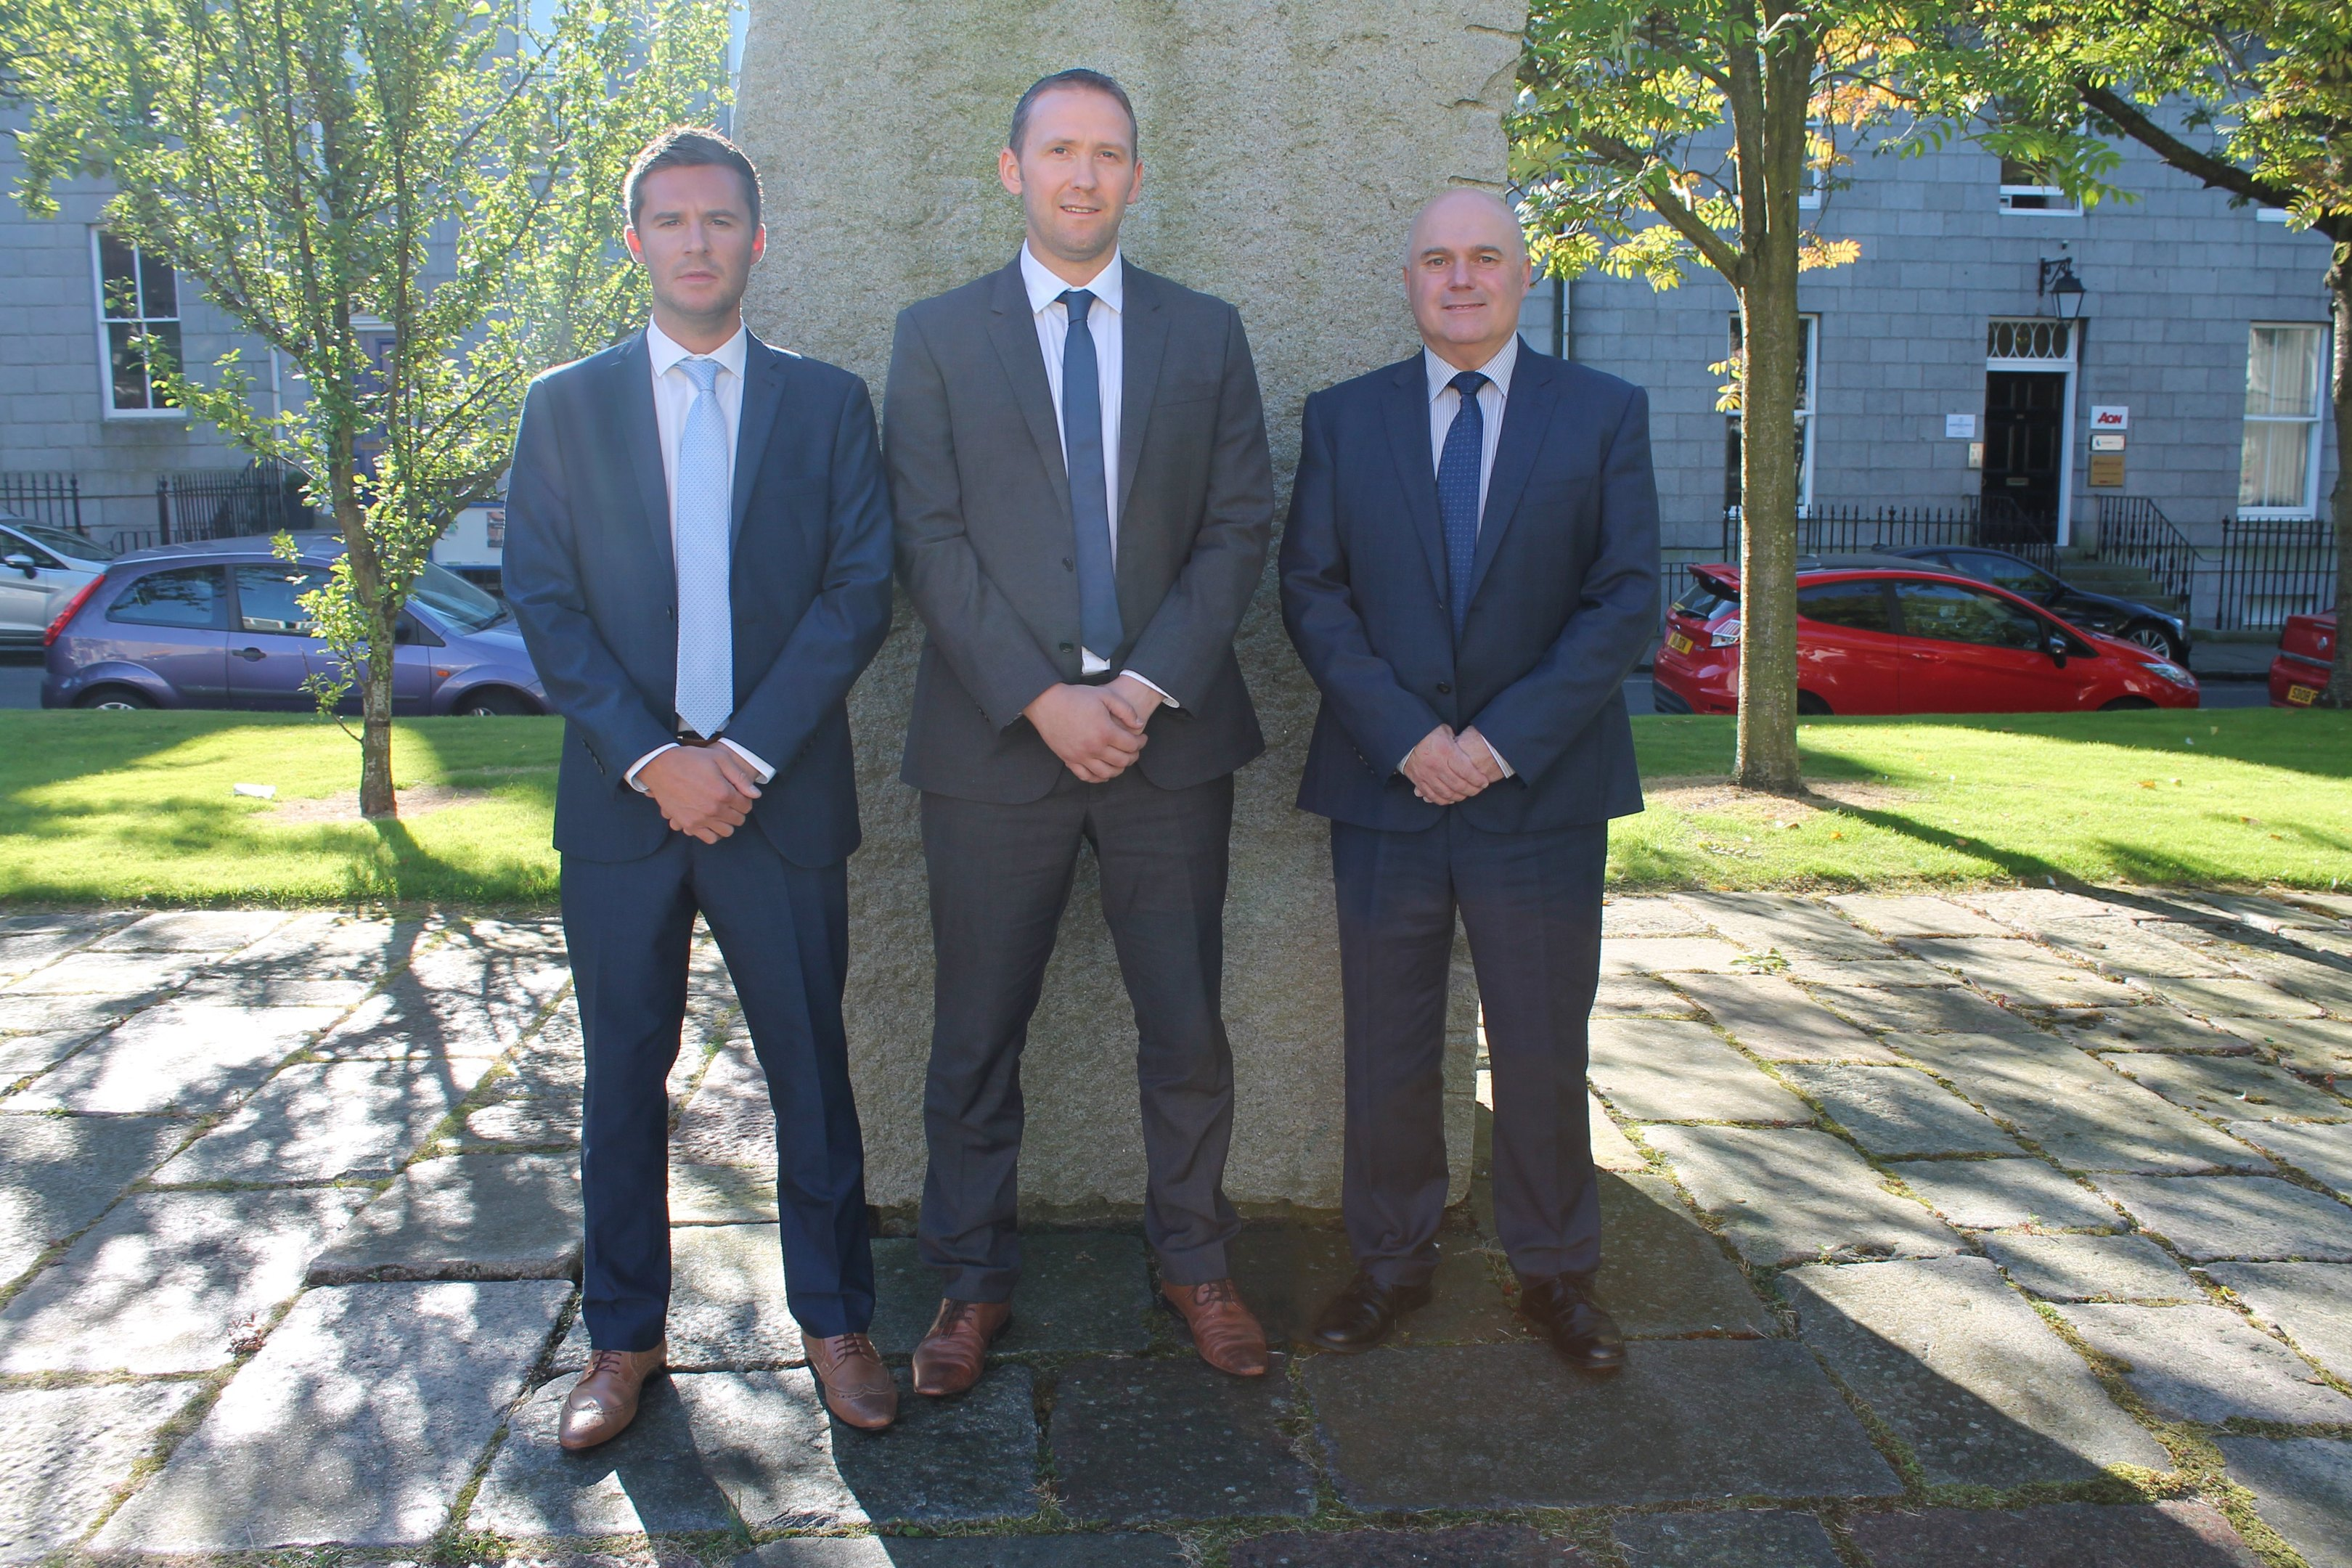 (L-R): Steven Miller, business development manager, Chris Collie, operations director & Martin Booth, managing director of Zenith Energy.